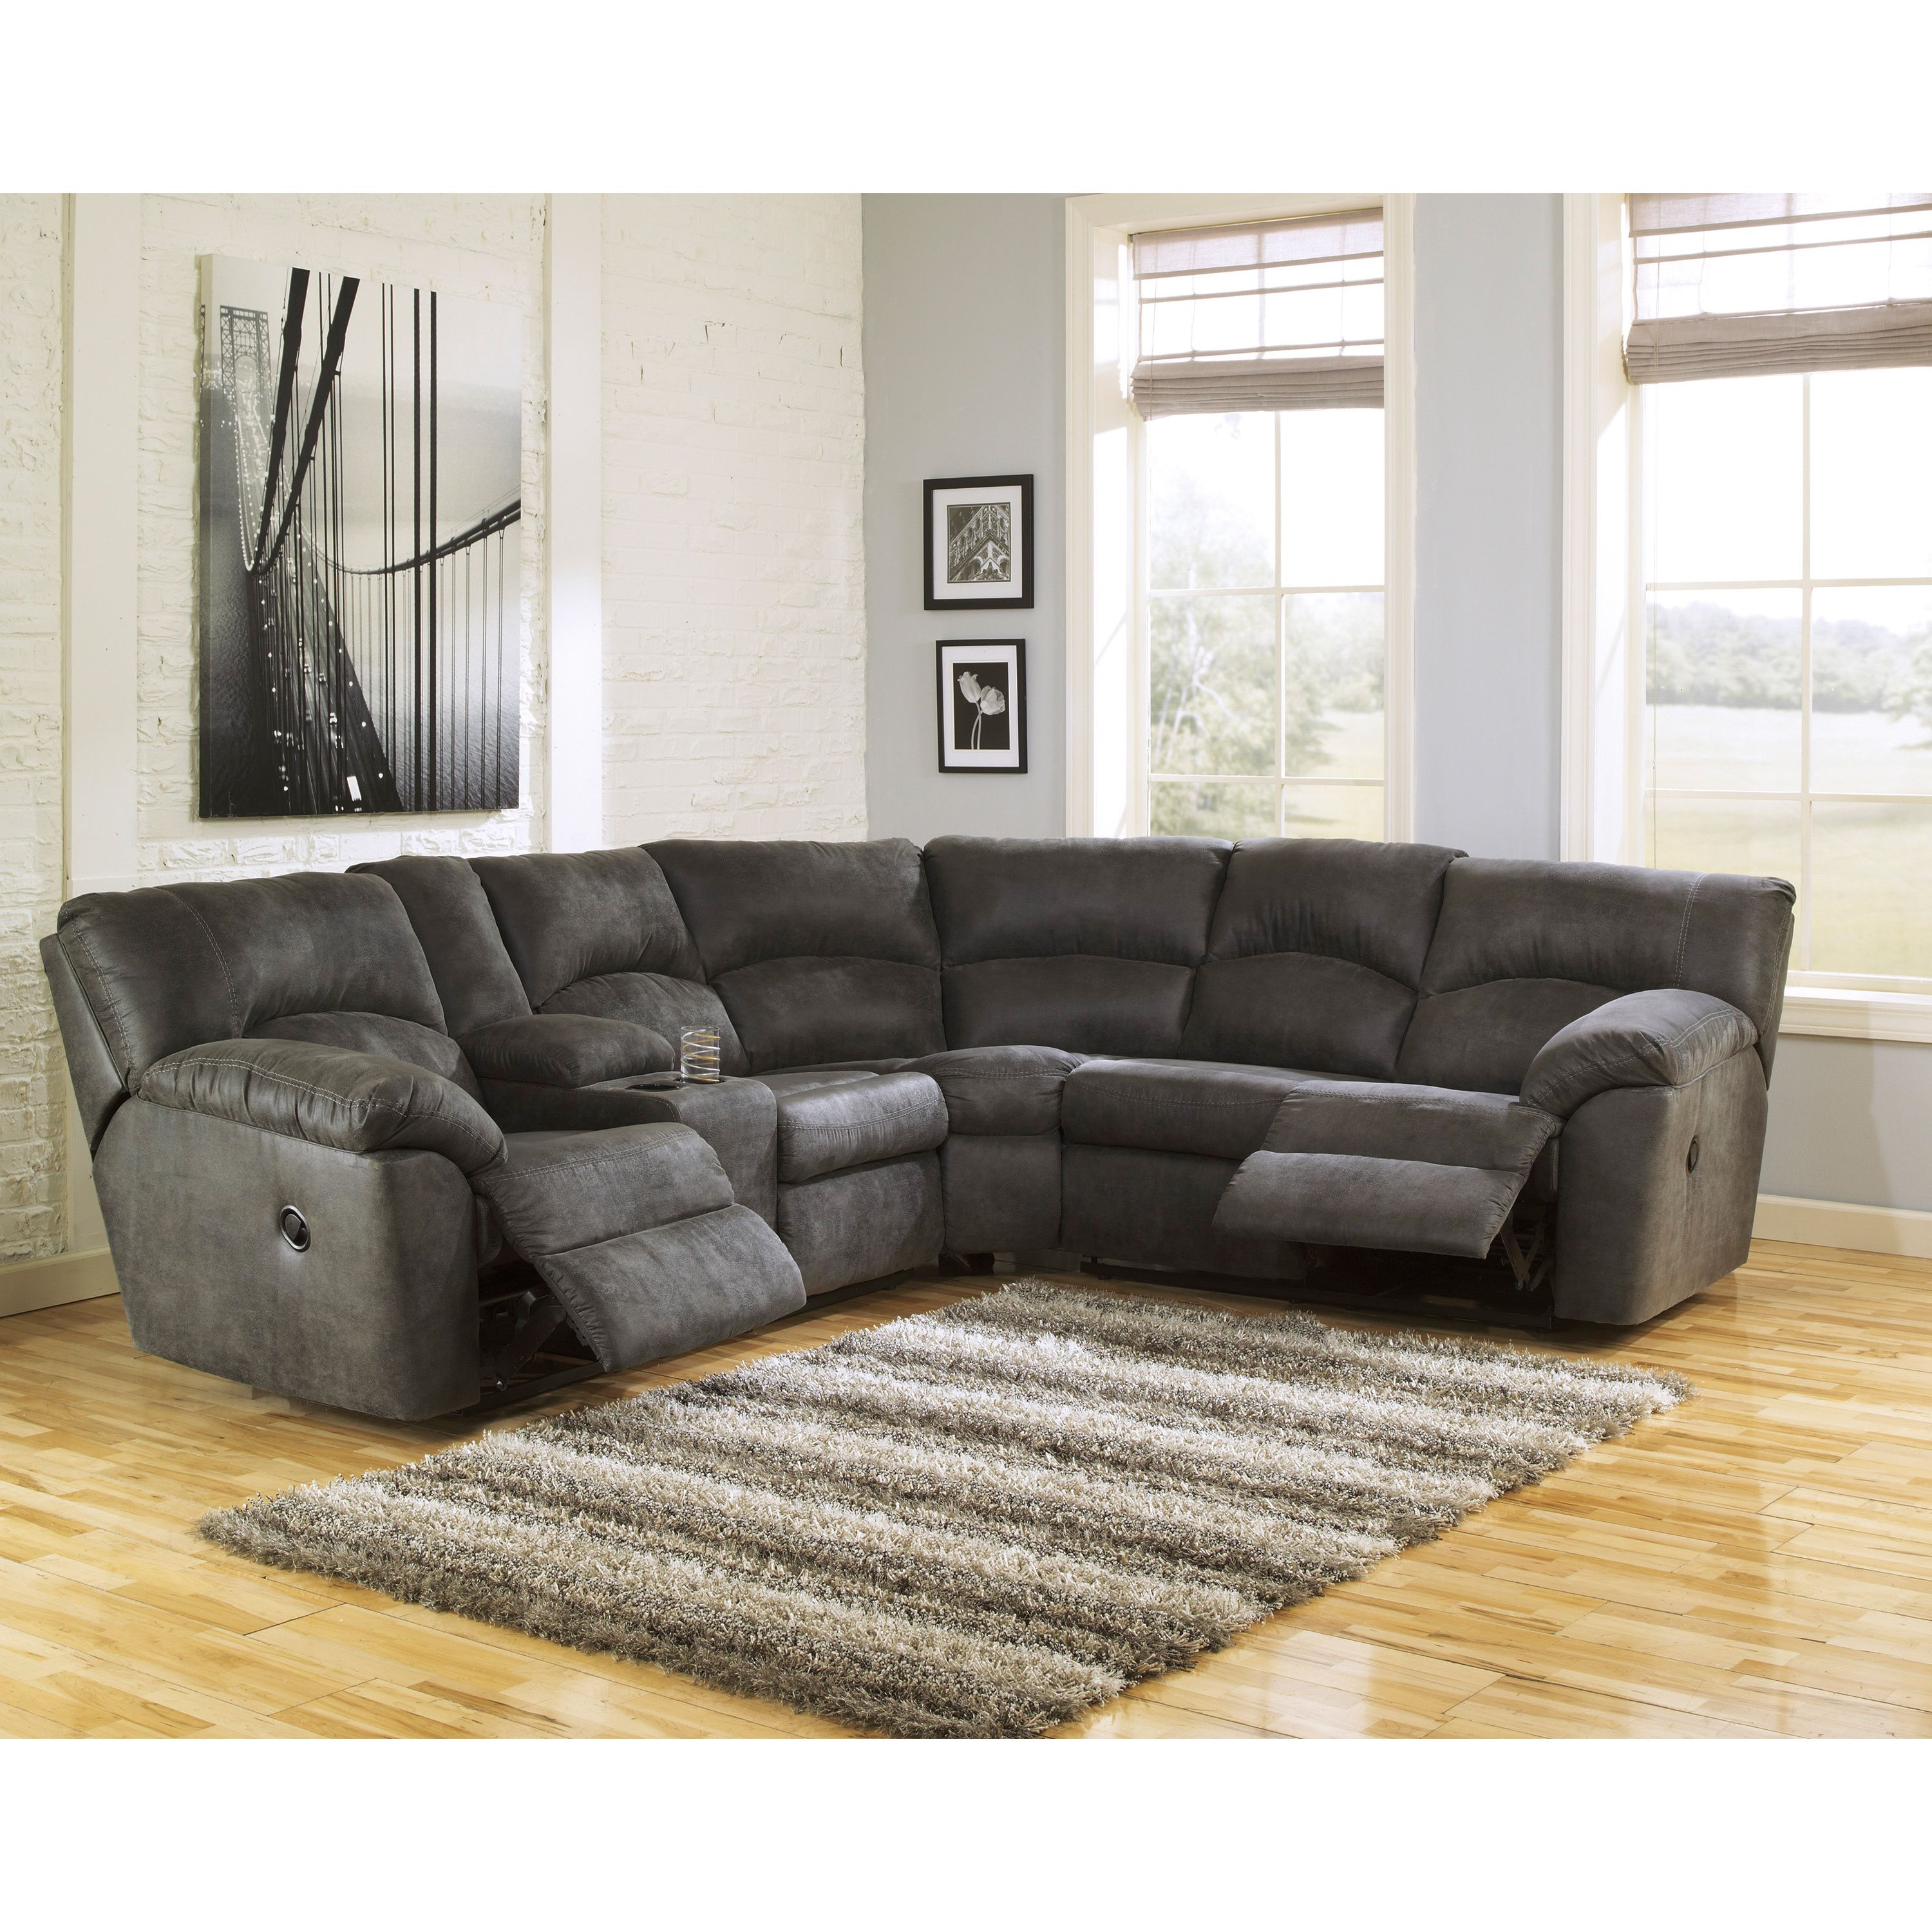 grobania and stock black ashley sofa lovely gray grey furniture fresh sectional loveseat sofas full of couch leather size living brown